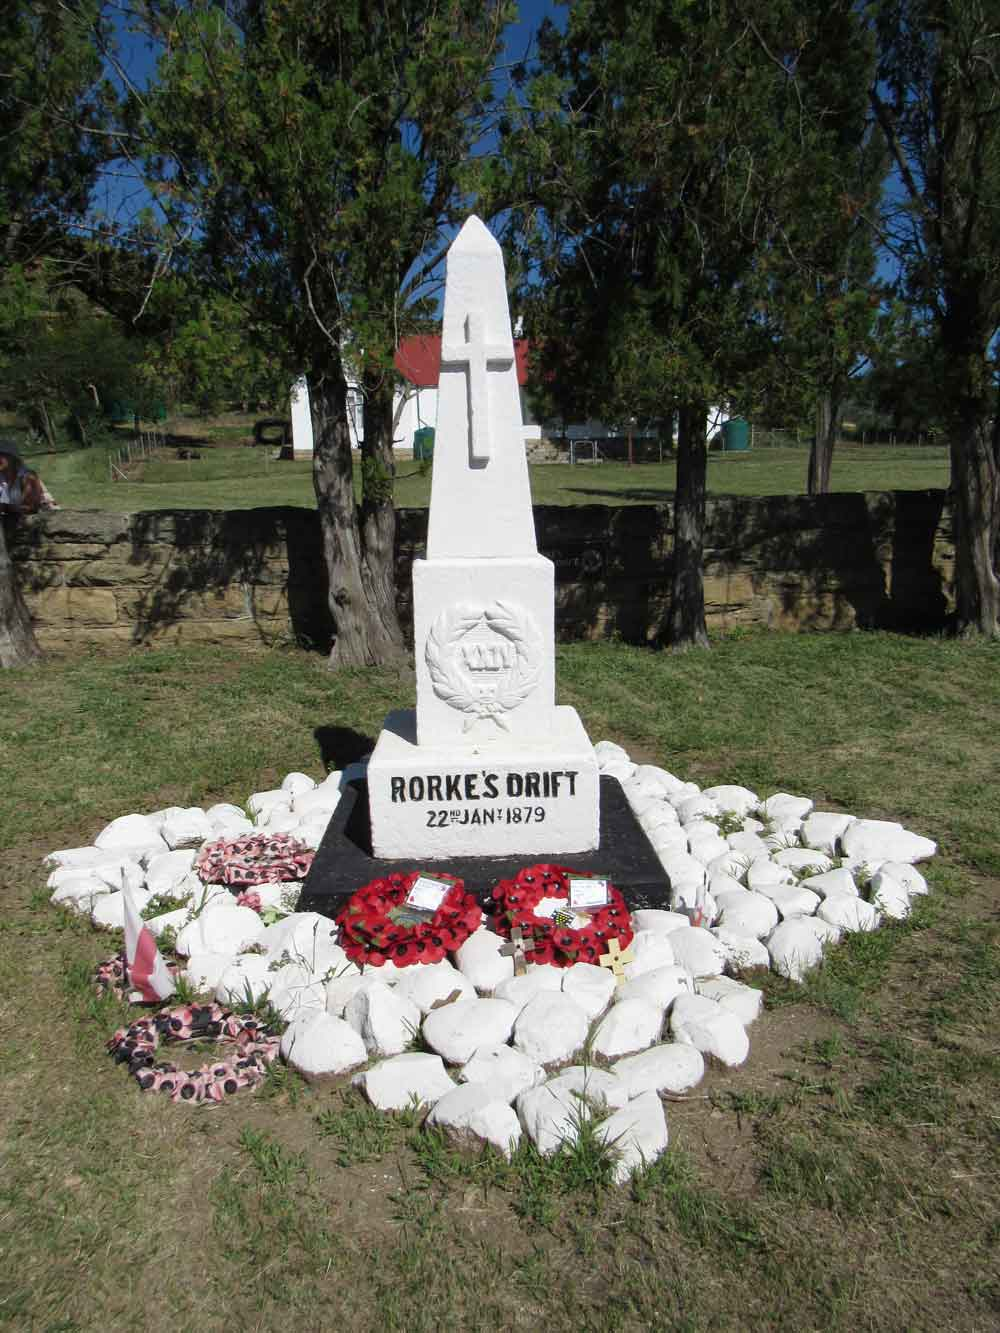 Rorkes Drift - British memorial